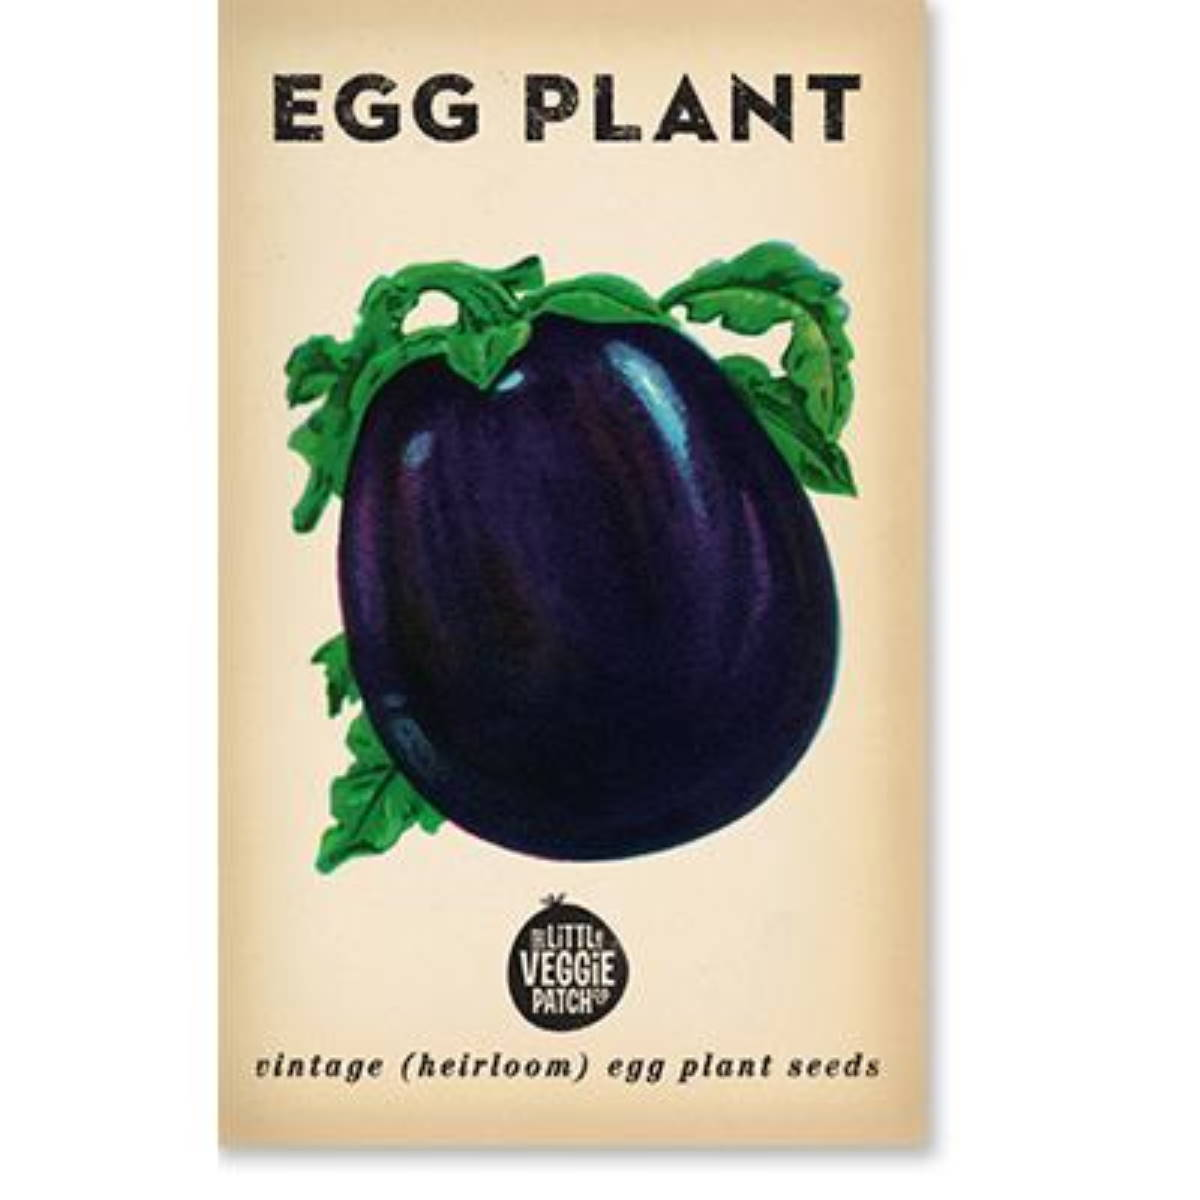 Eggplant (Florida Market) Heirloom Seeds